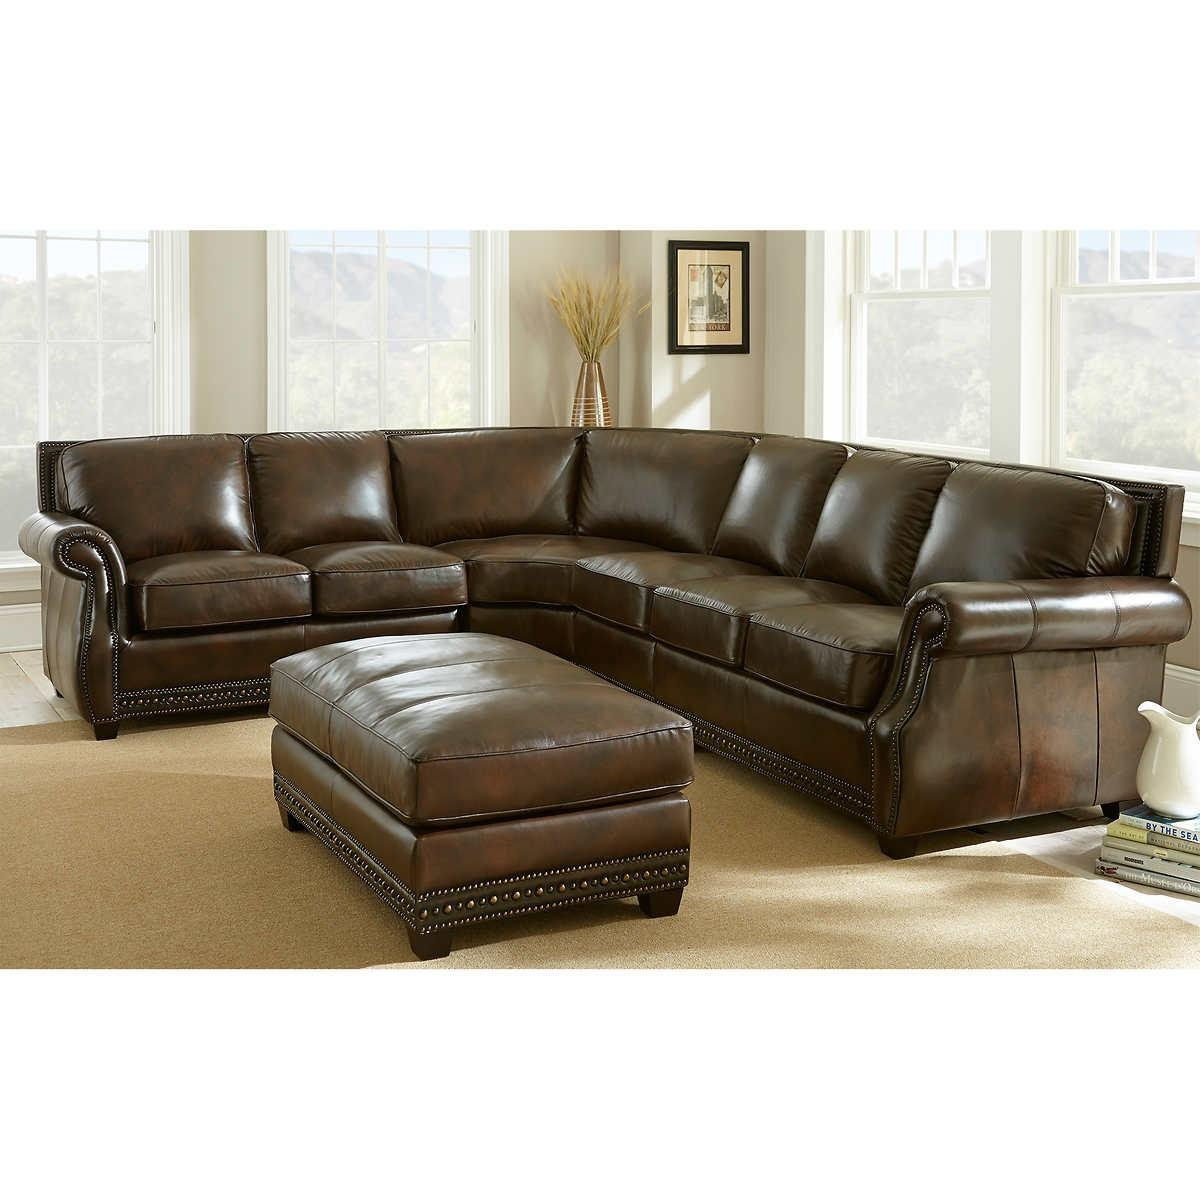 Epic Sectional Sleeper Sofa With Recliners 17 With Additional Throughout Slumberland Couches (Image 4 of 20)